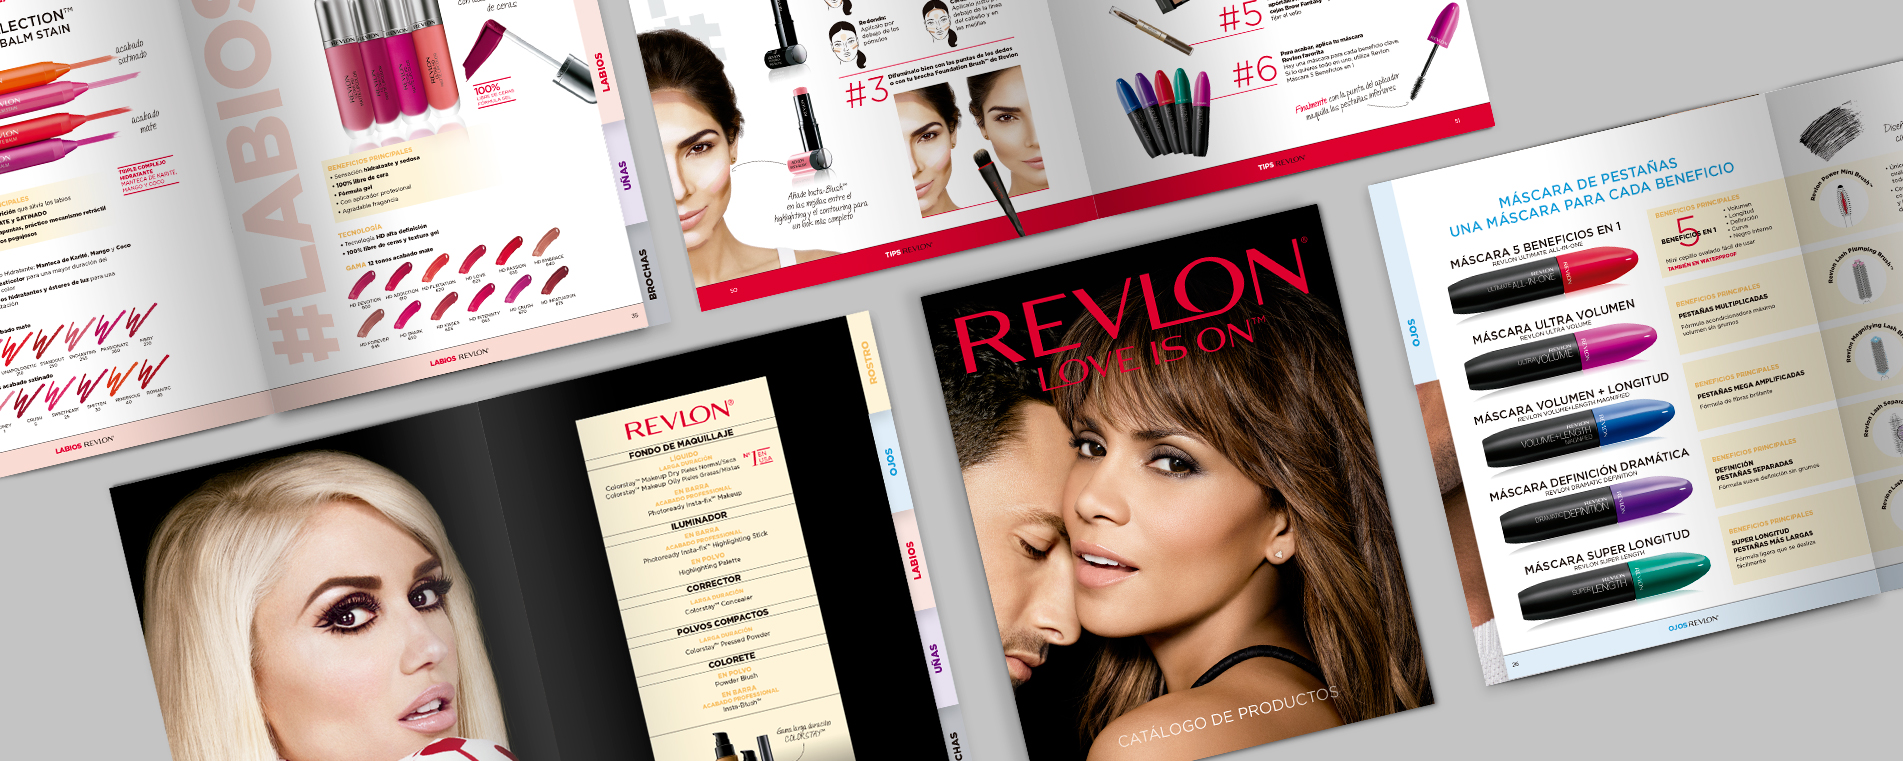 diapo-cataleg-revlon_1